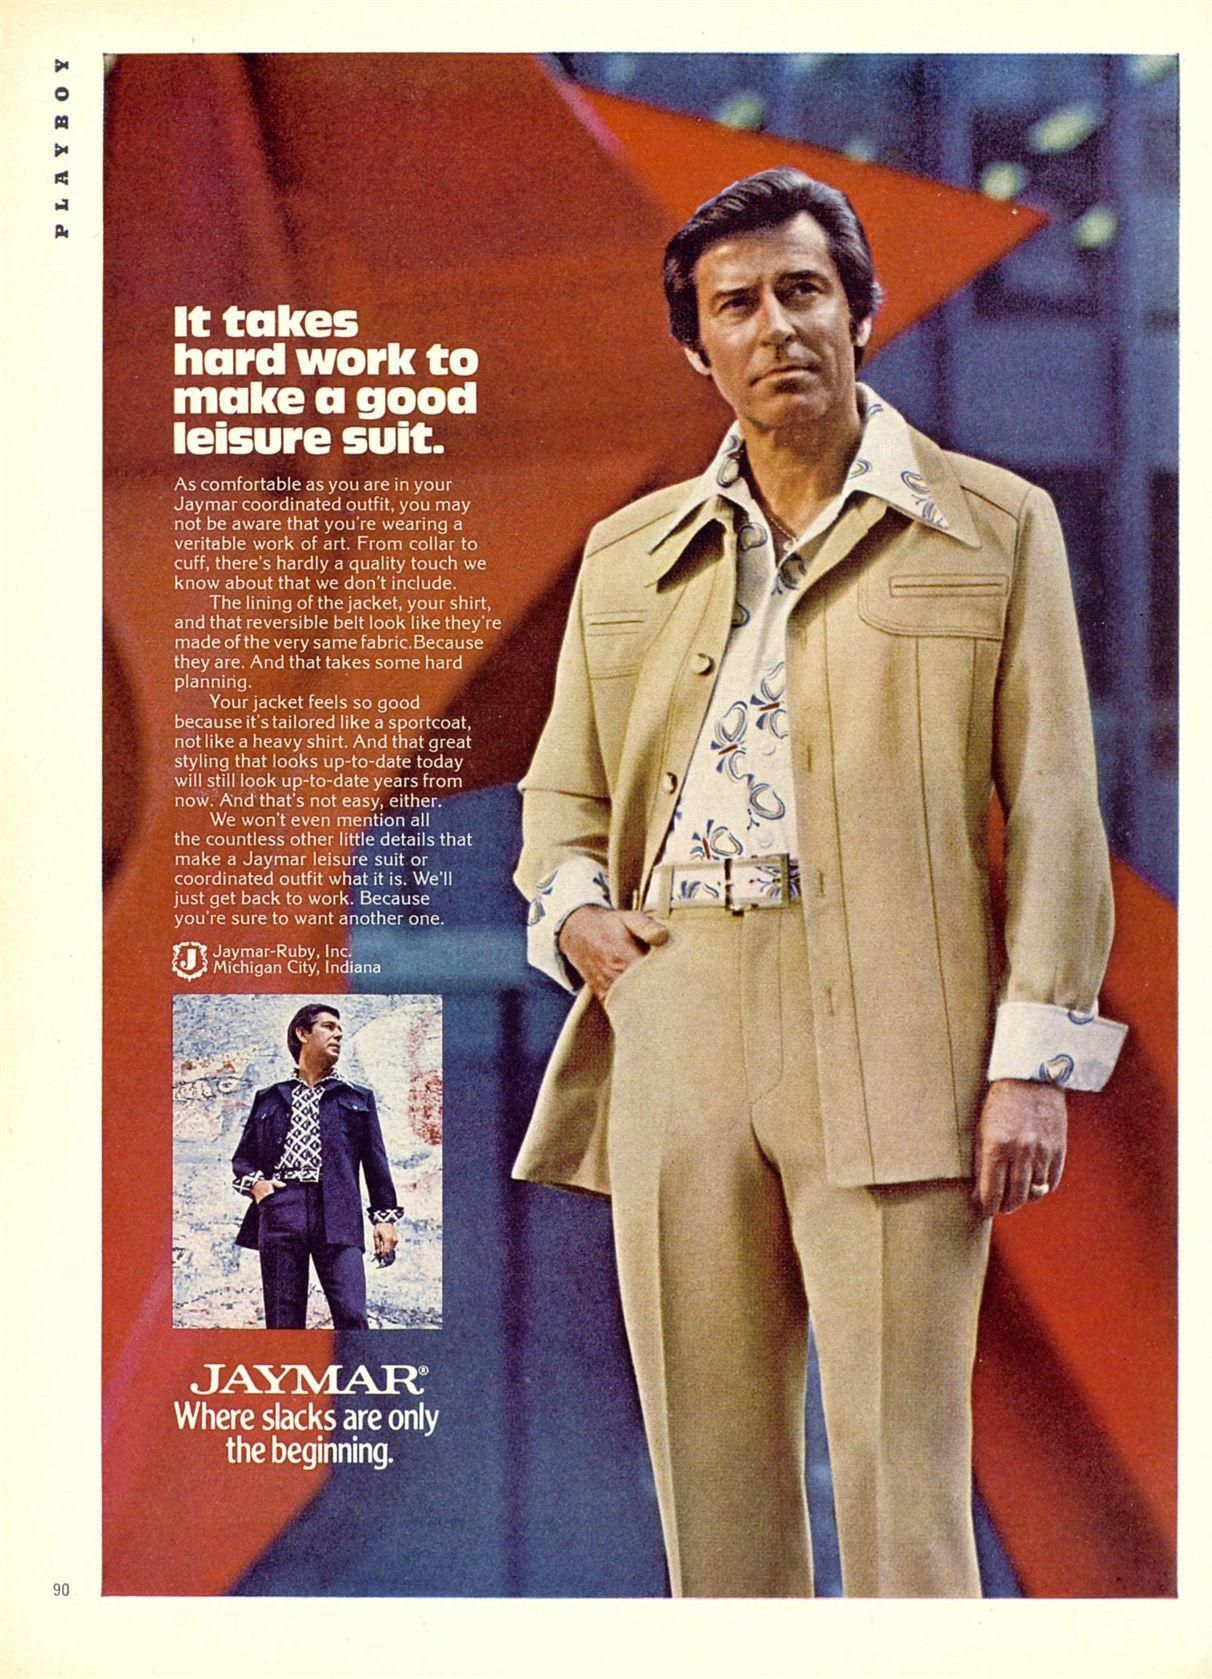 1970 Mens Clothes Google Search: Popular Men's Suit In The 1970's. More